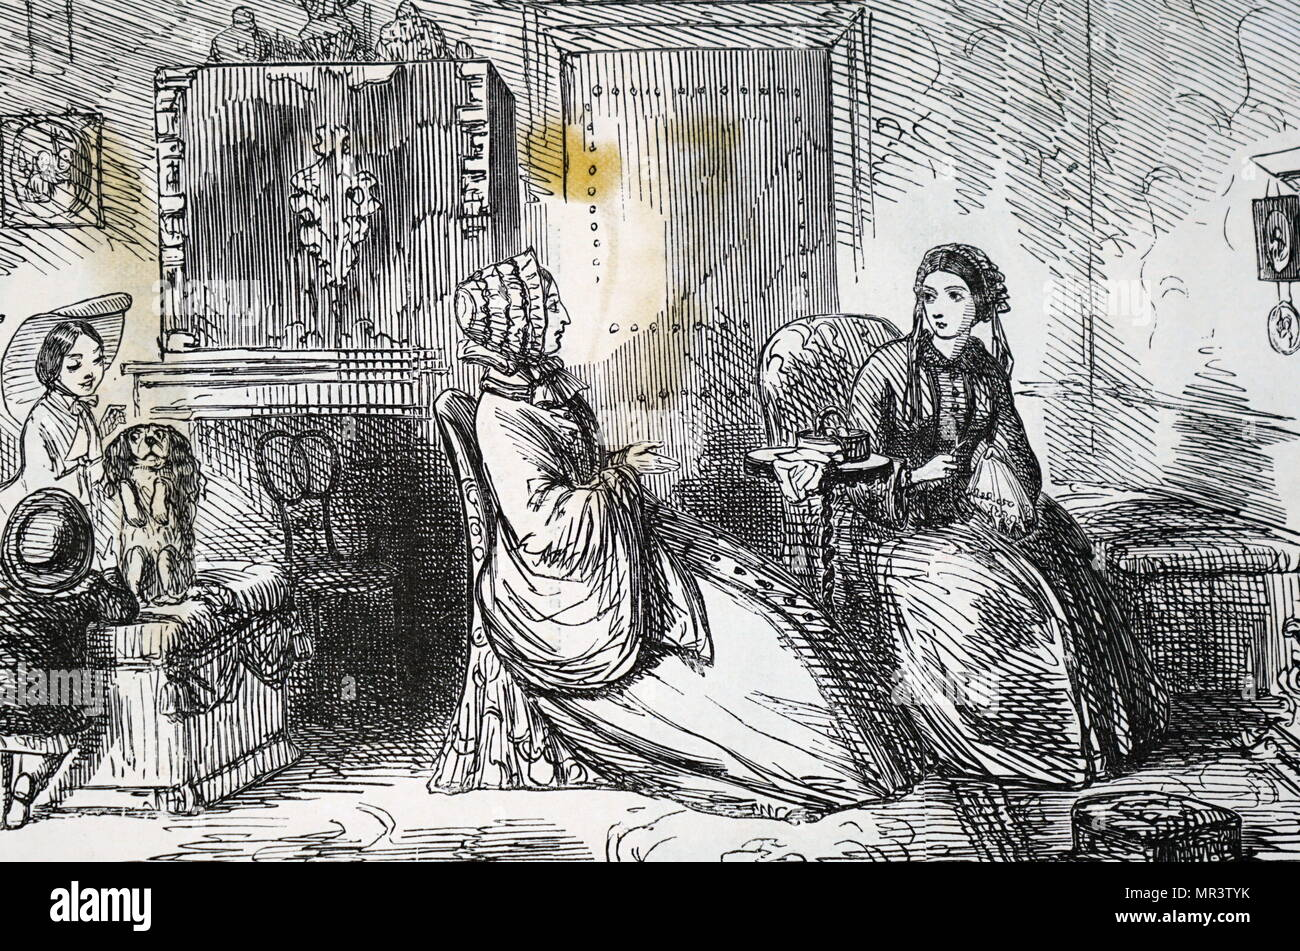 Illustration depicting a wealthy Victorian family spending time together in their luxury London home. Dated 19th century - Stock Image